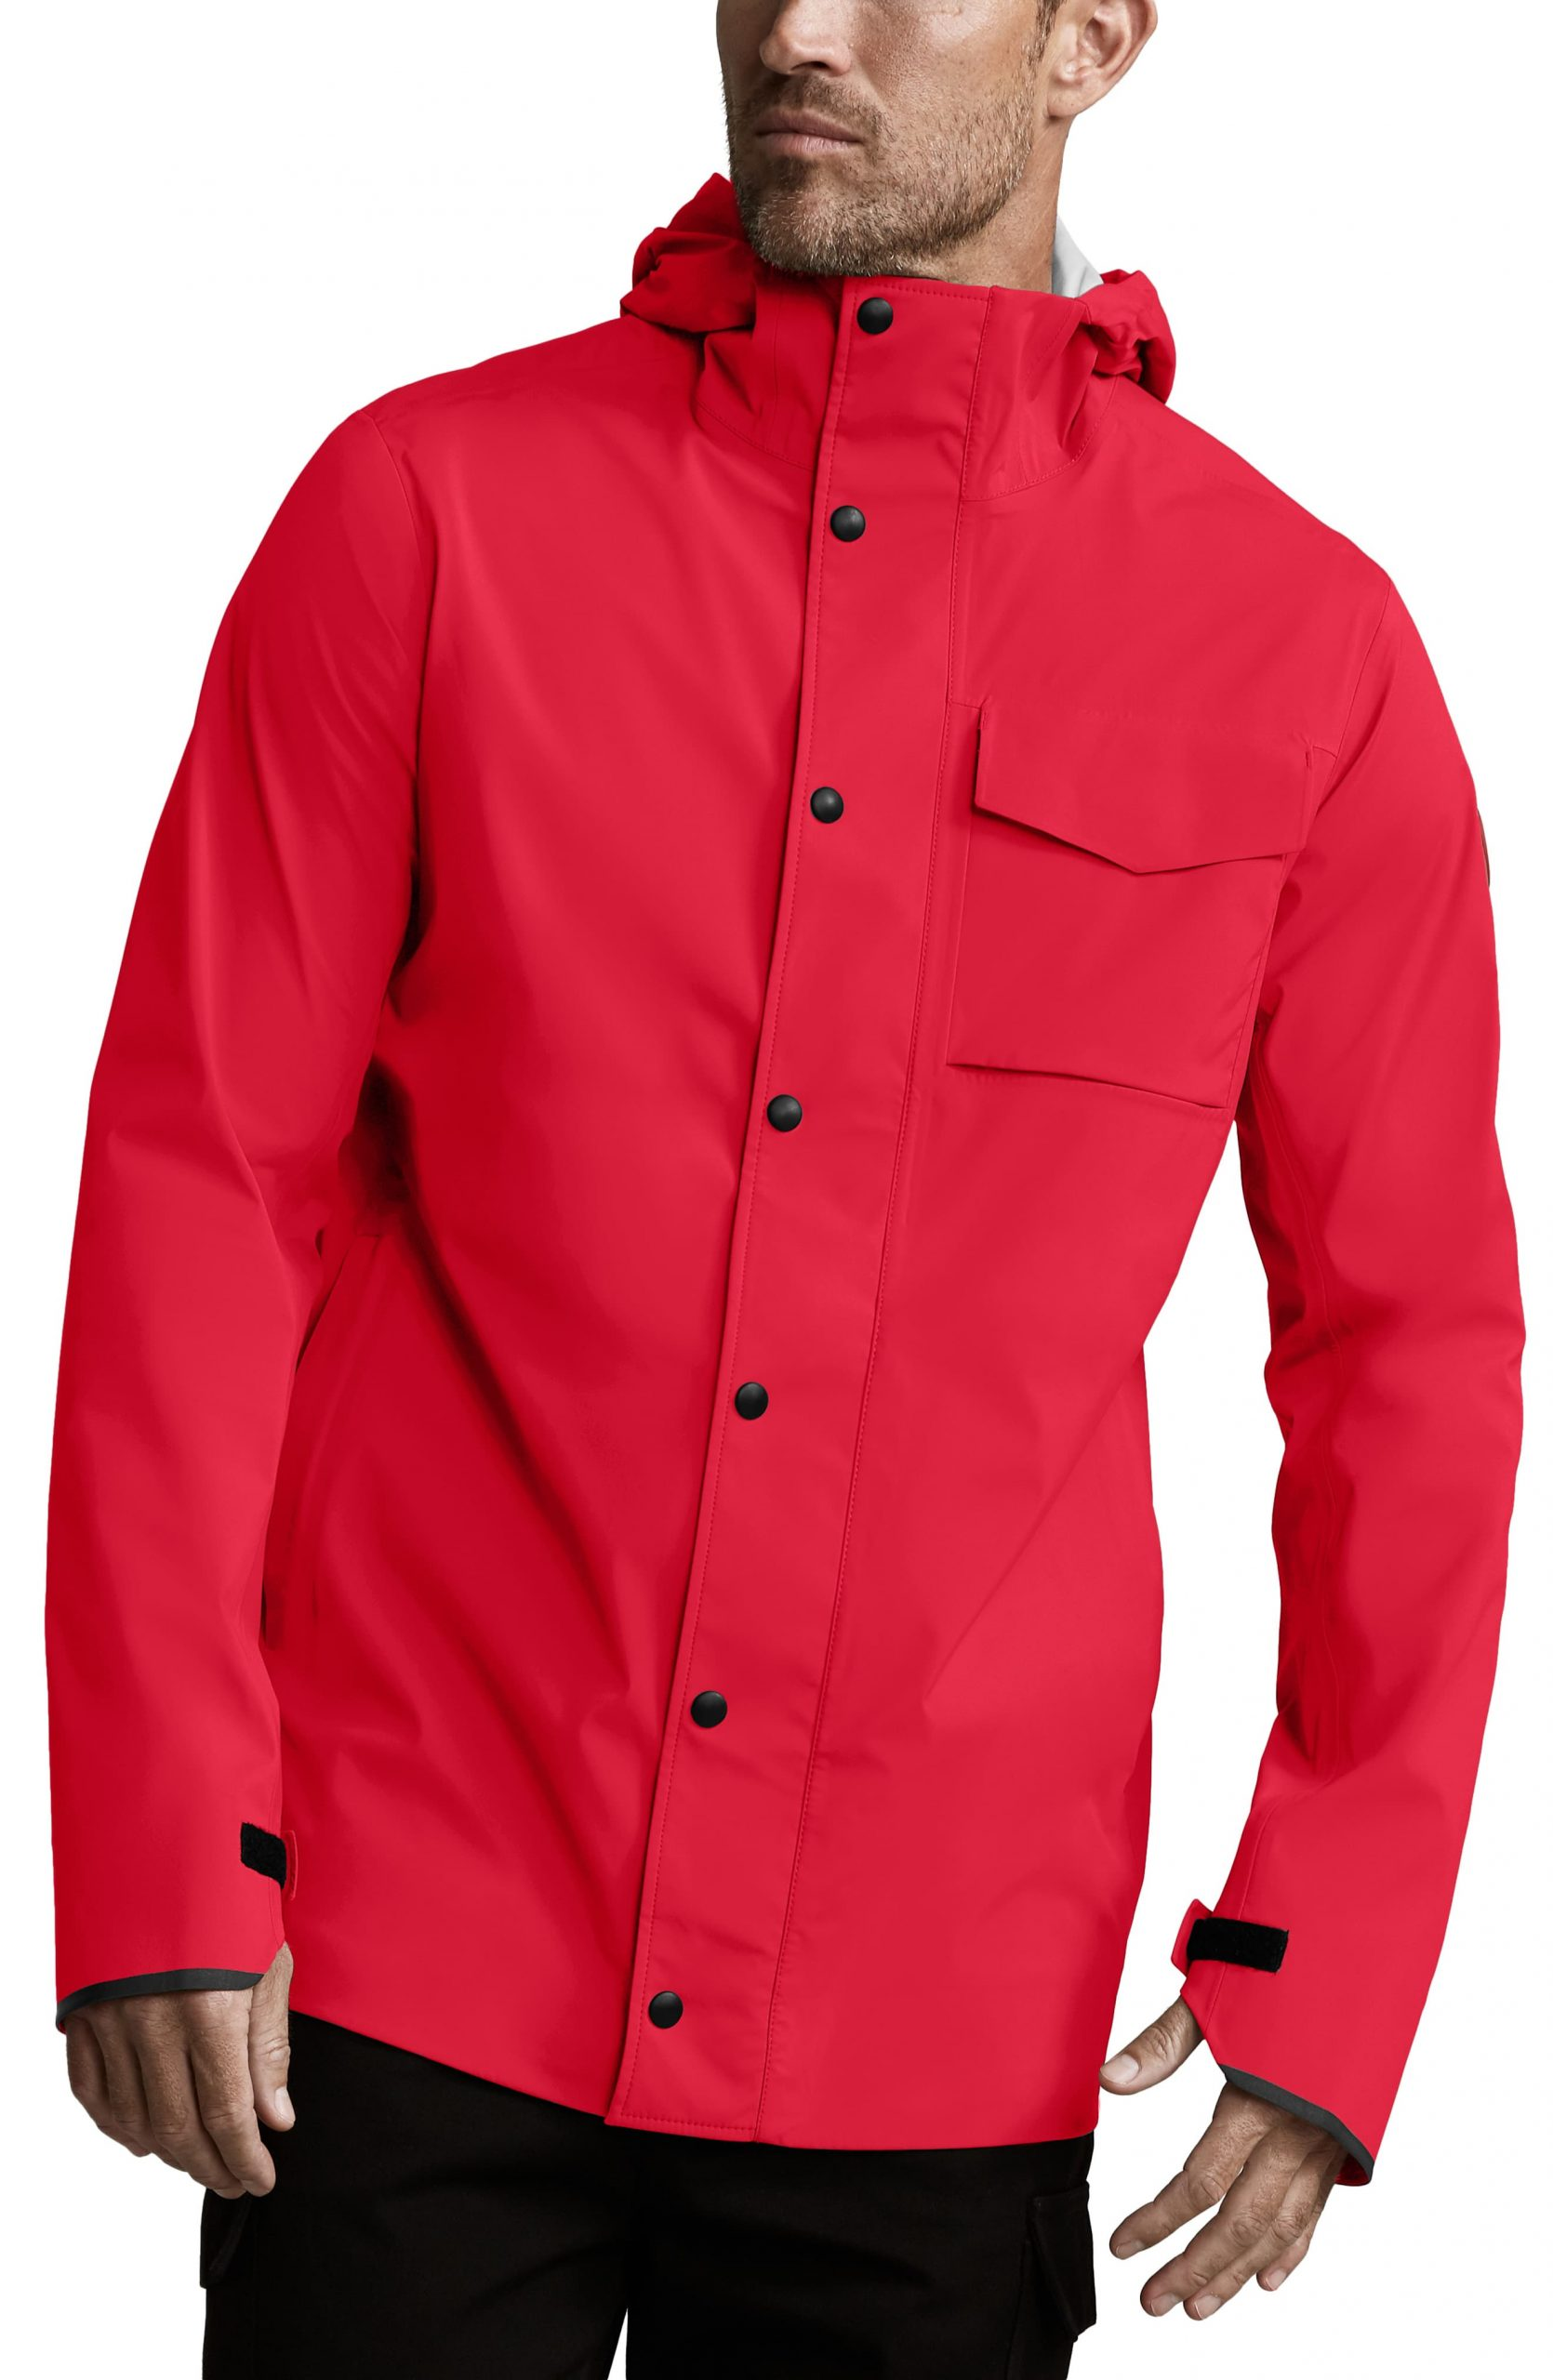 Men's Canada Goose Nanaimo Windproof/waterproof Jacket, Size Small - Red